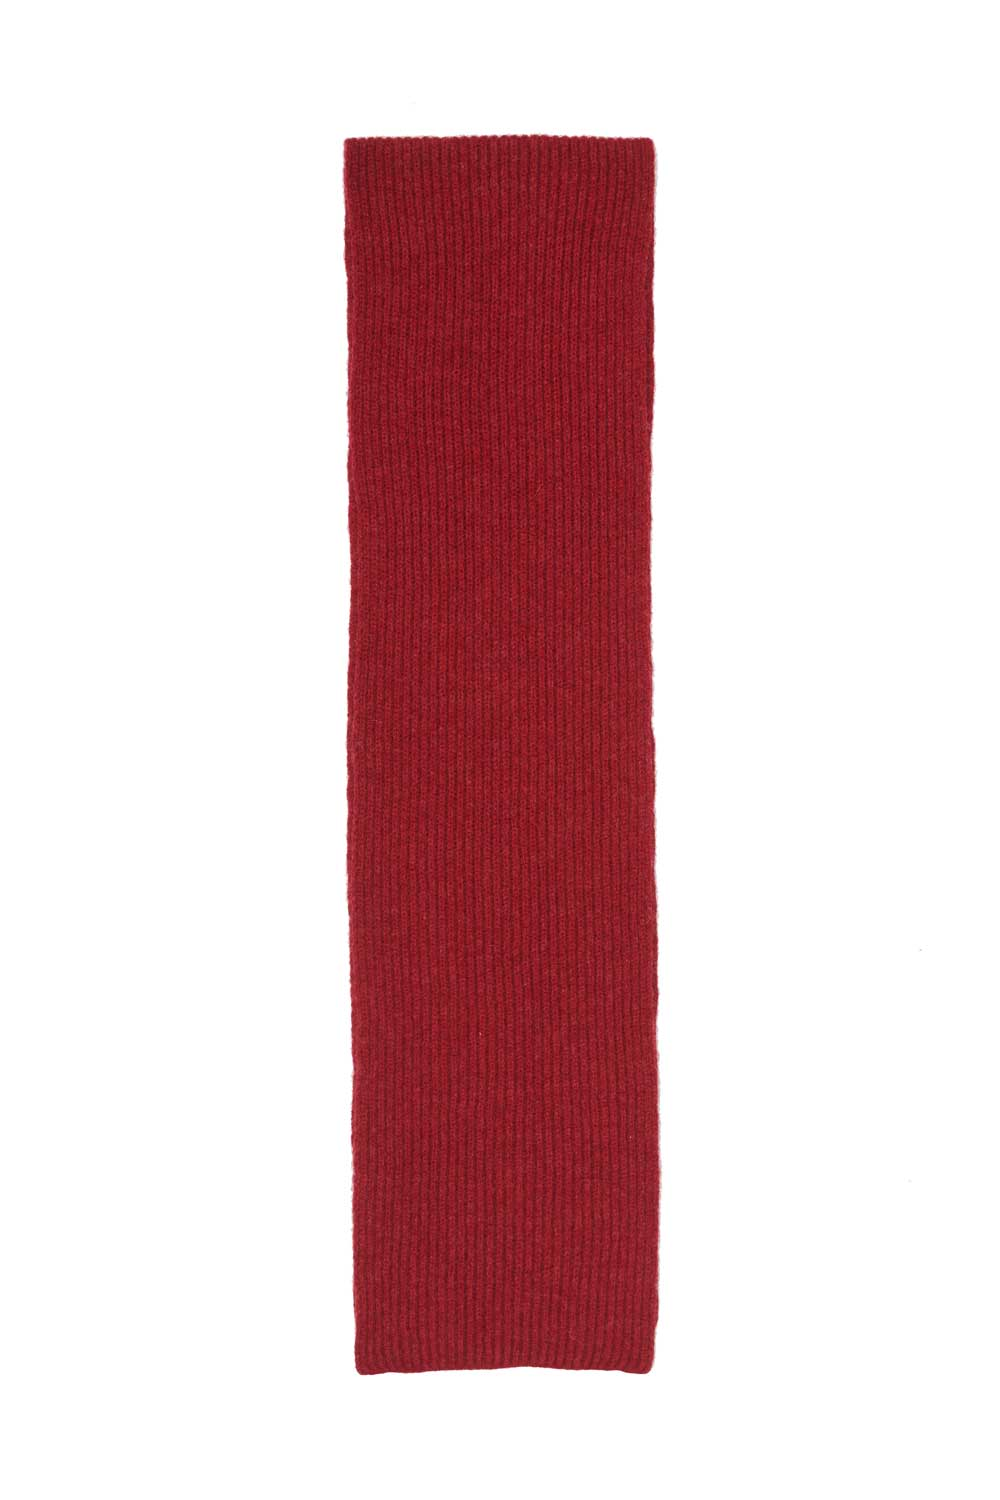 Kids Lambswool Red Scarf